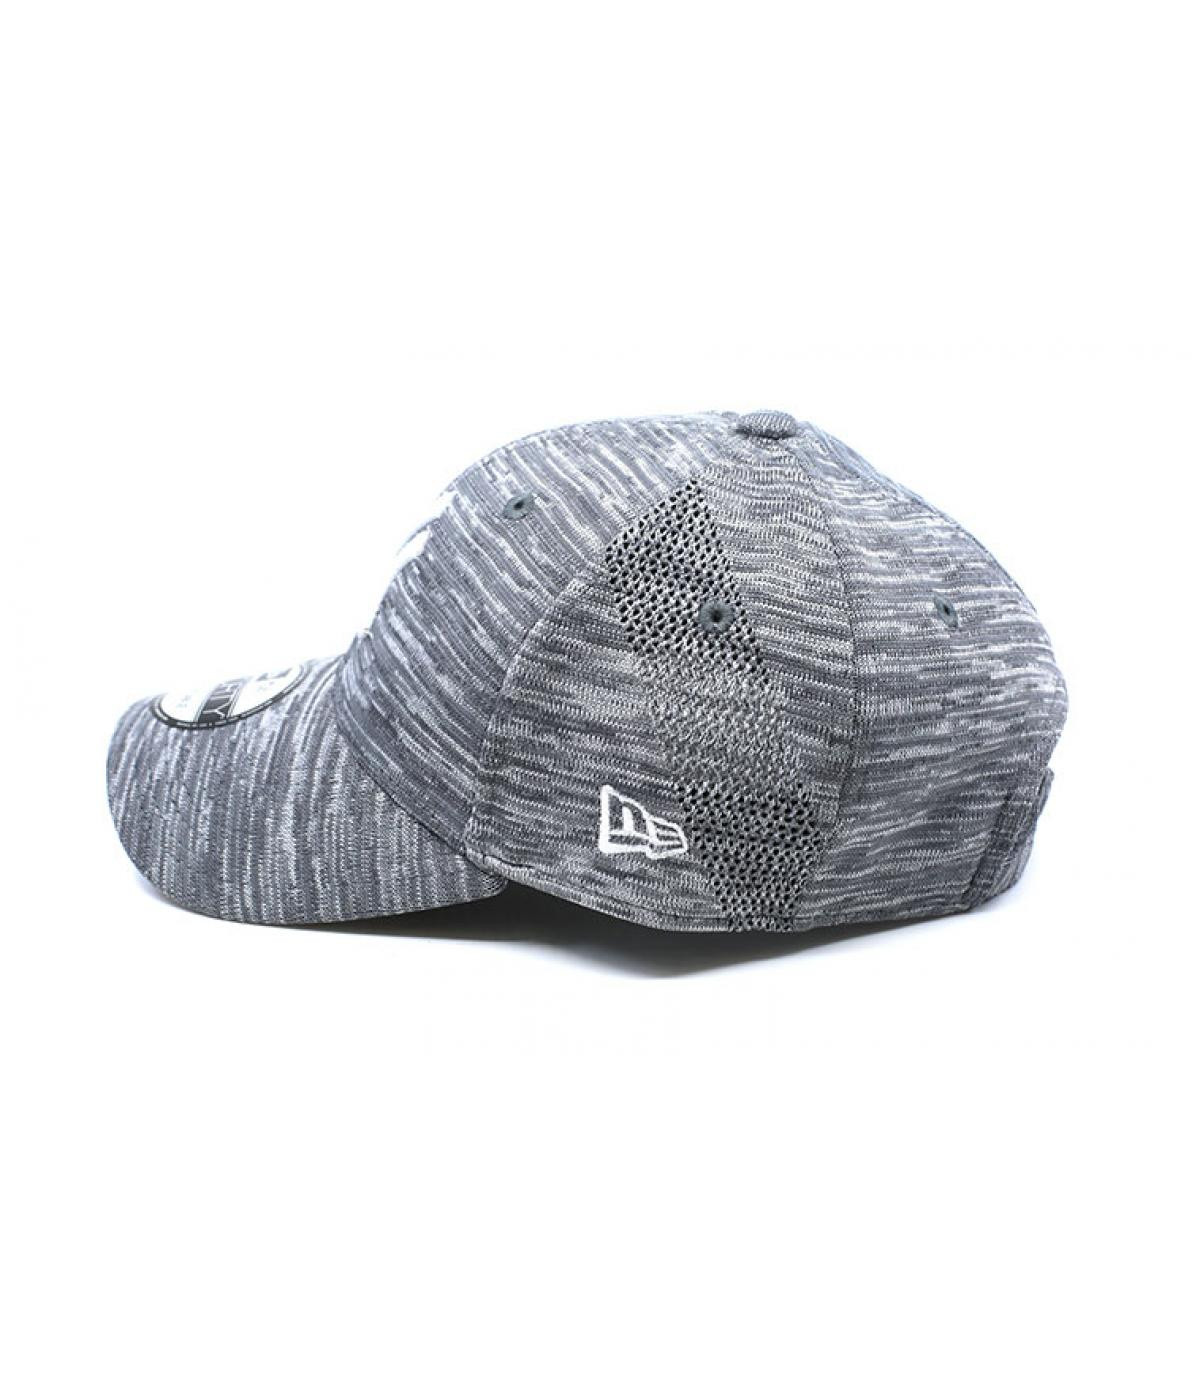 59a1c68c35650 casquette NY gris chiné Engineered - Casquette Engineered Fit NY ...